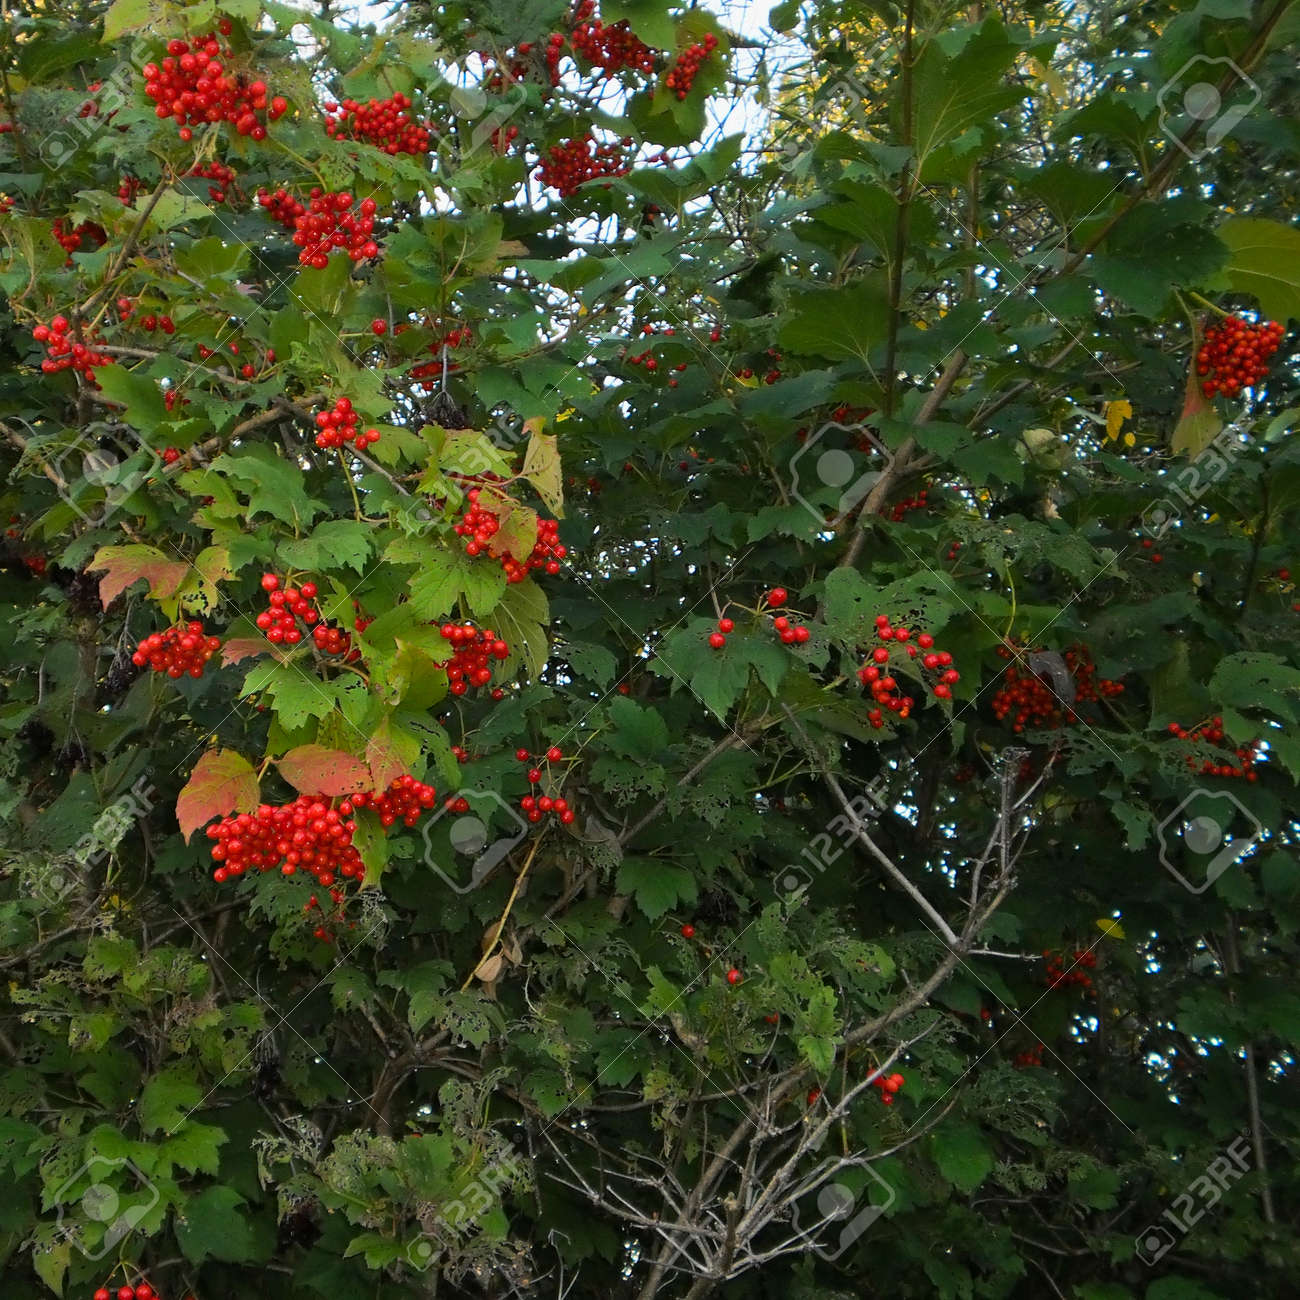 Viburnum Bush With Bunches Of Red Berries Shrub Or Small Tree